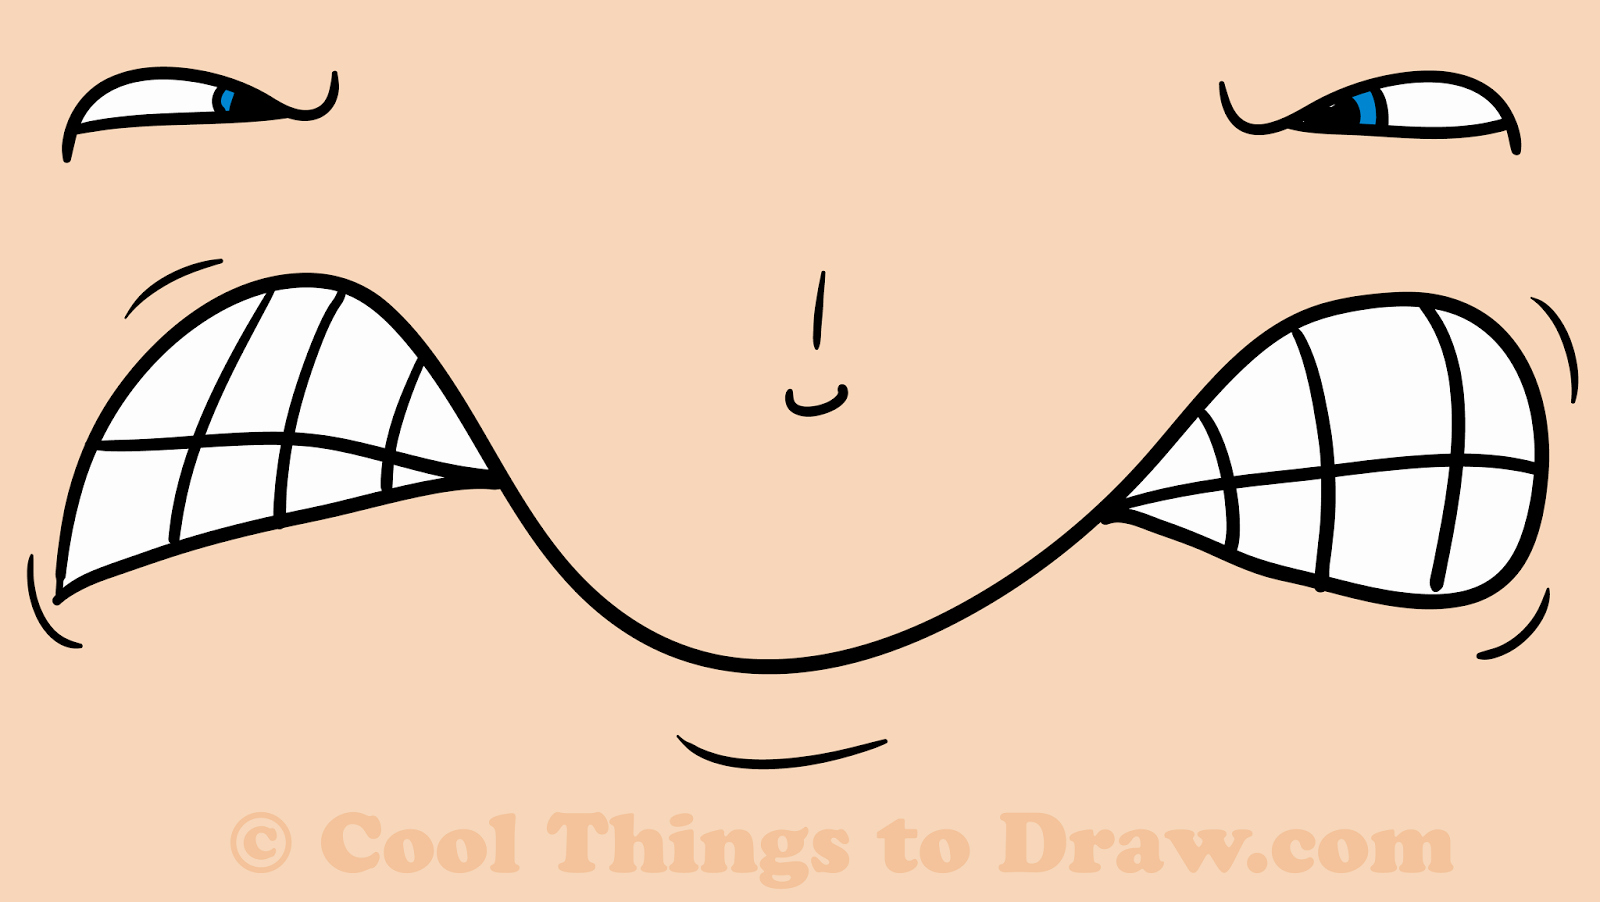 Cool Drawings to Draw Inspirational Drawing Ideas for Kids Cool Easy Things to Draw for Kids